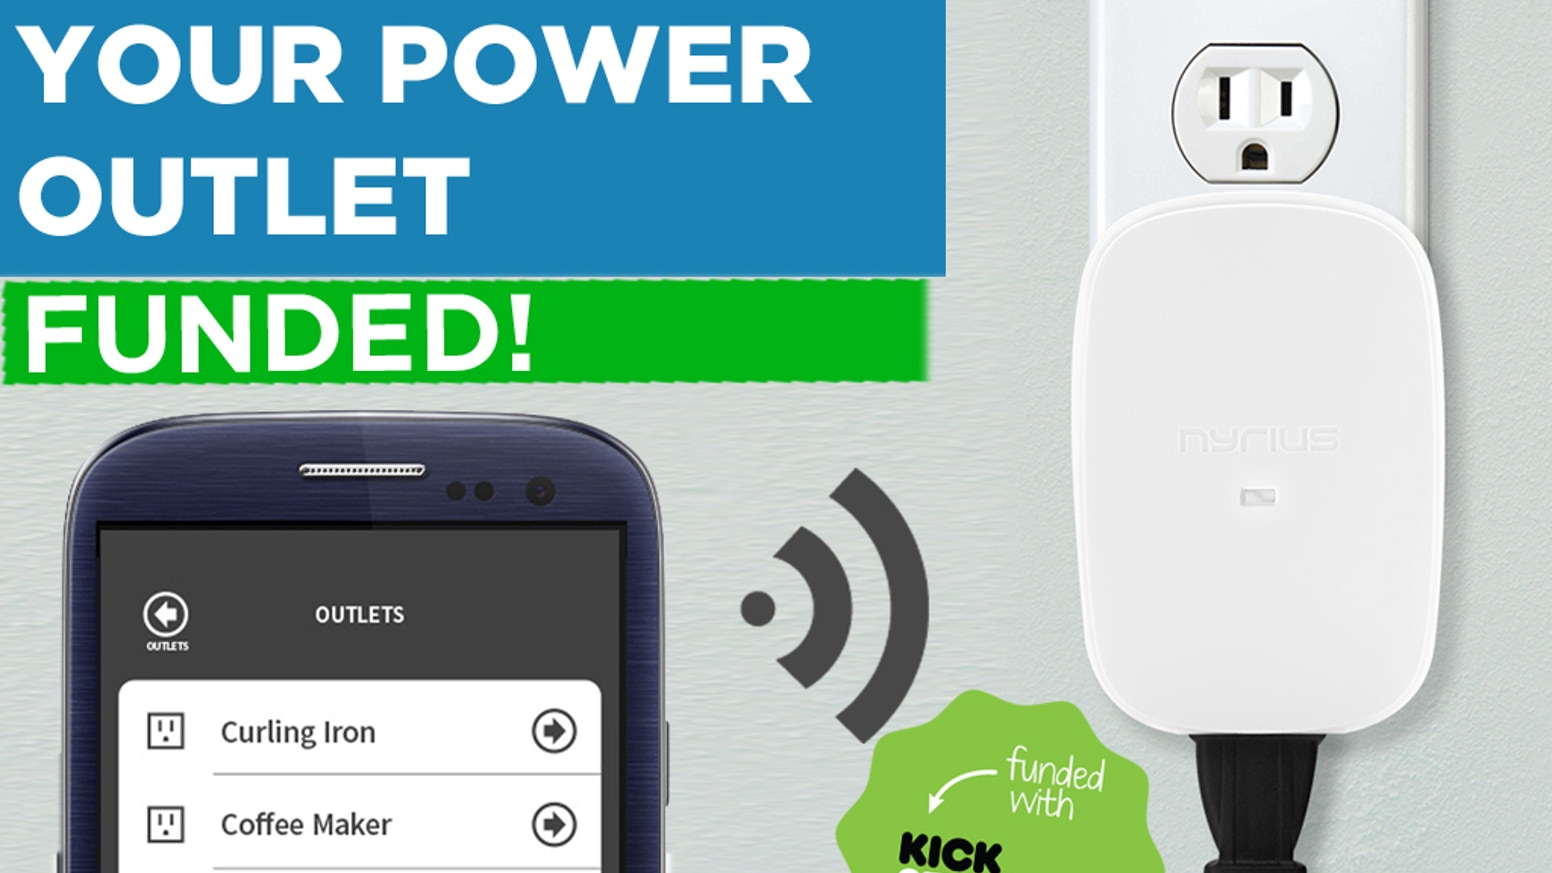 Wirelessly control any electronics that plug into your power outlet from your smartphone using Bluetooth technology